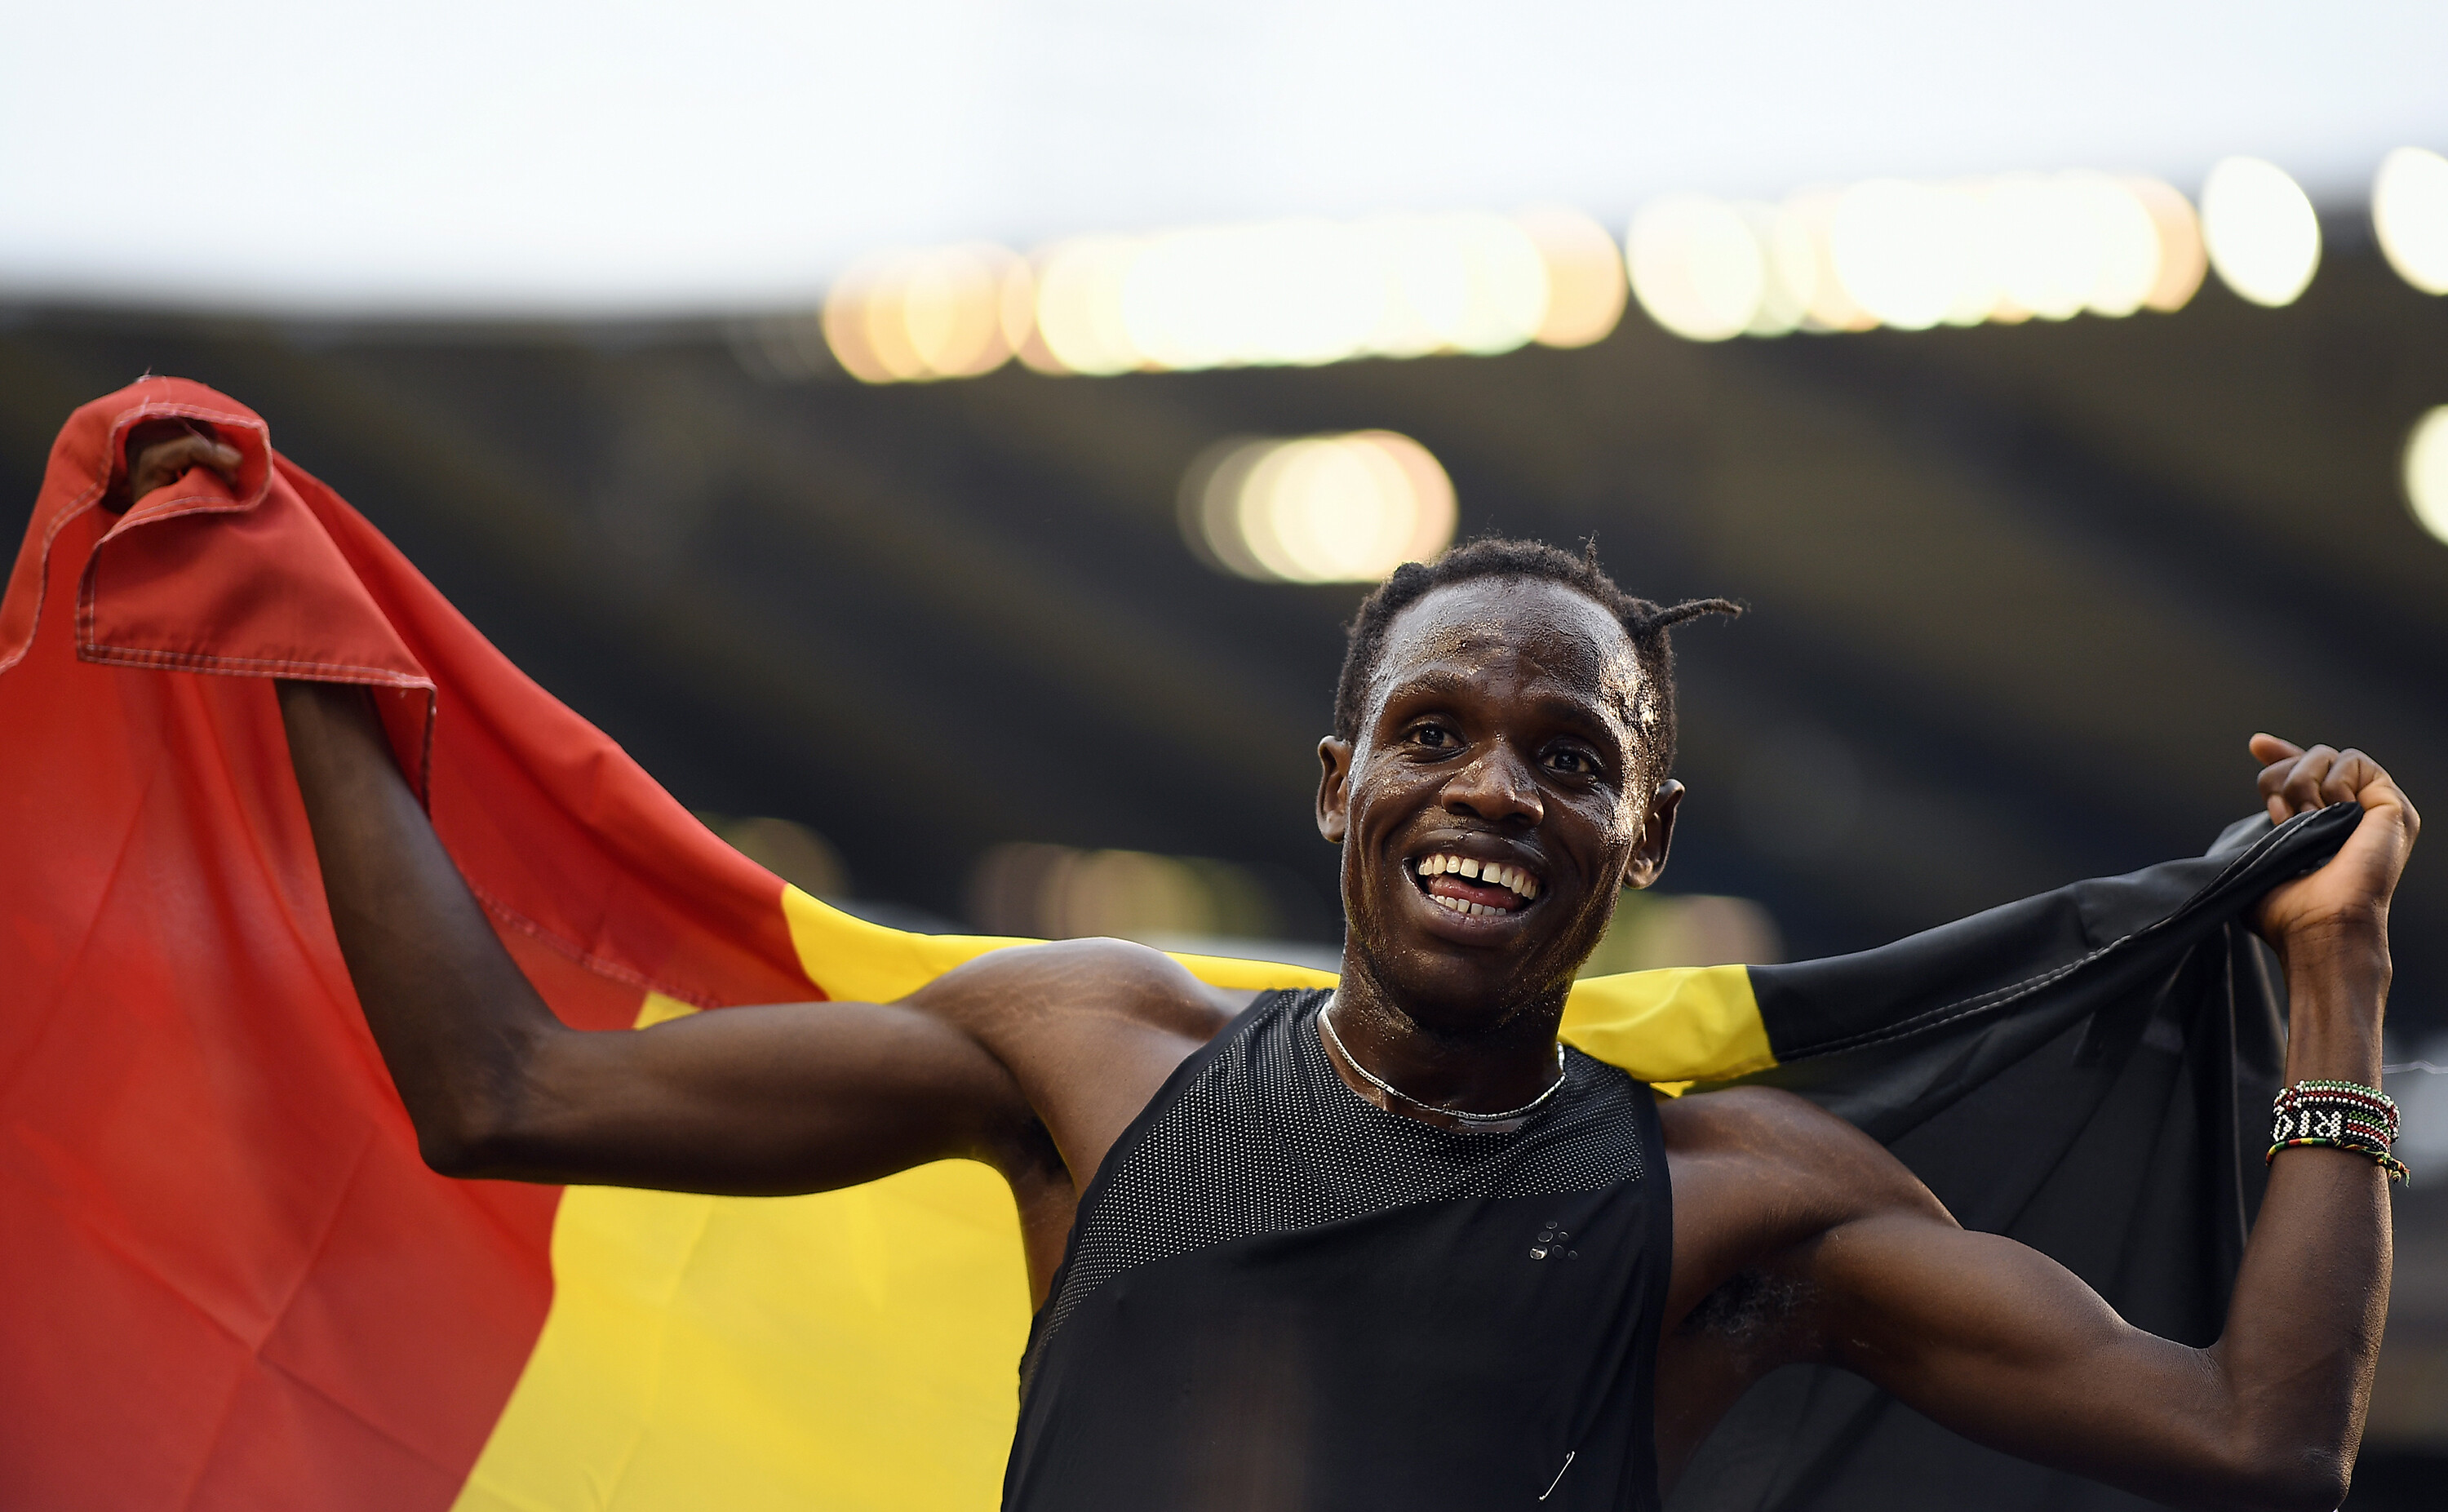 From not speaking the language to competing for the national team at Tokyo 2020, Belgian runner Isaac Kimeli is aiming for gold